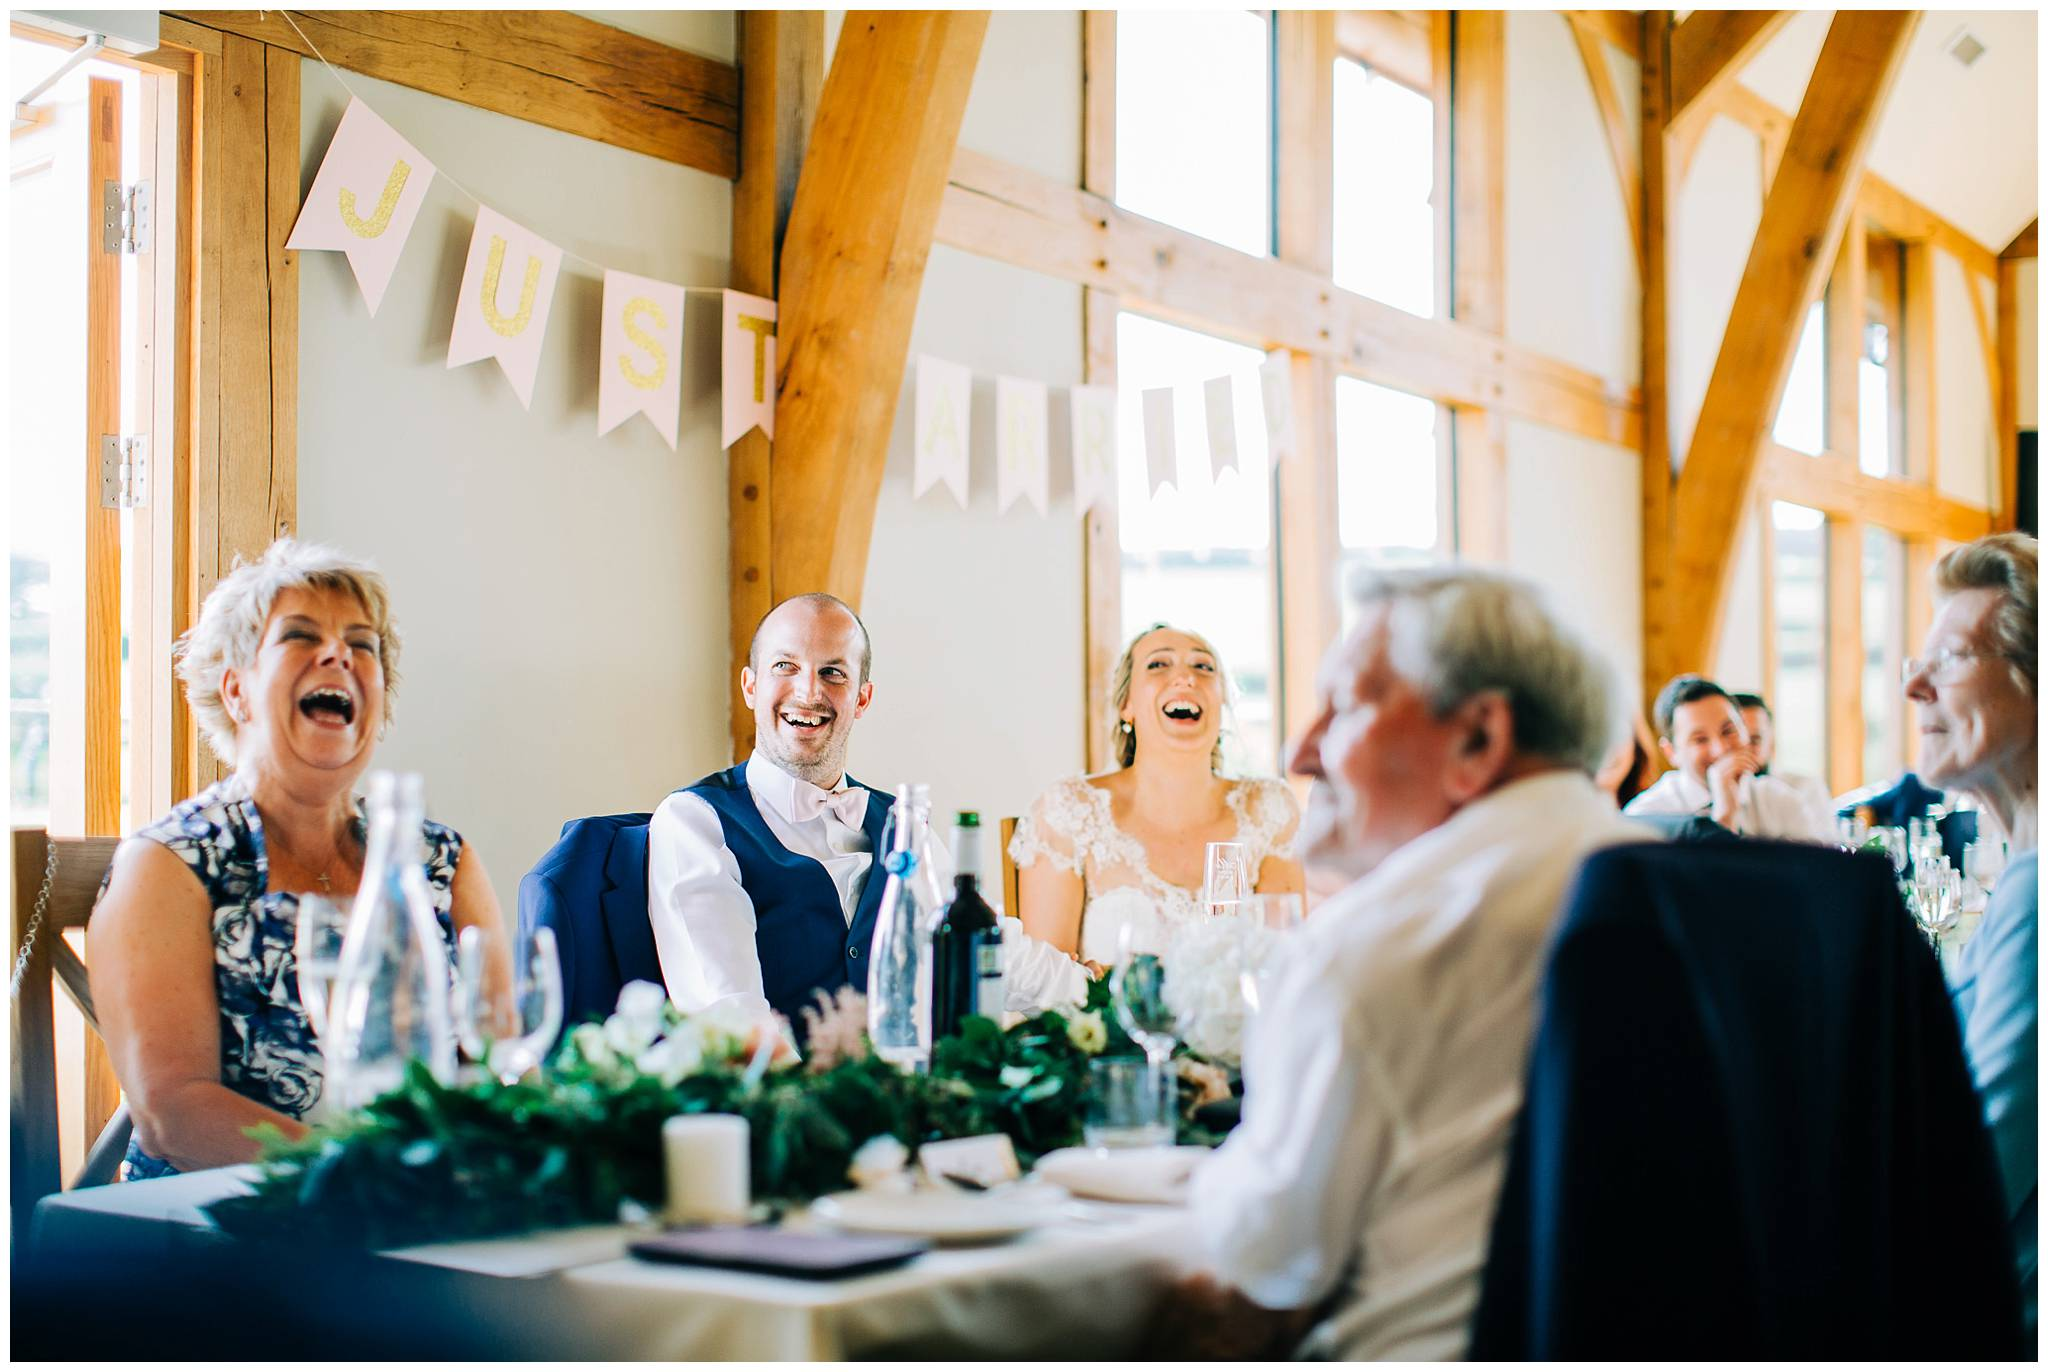 everyone is in hysterical laughter on the top table during the best man speech